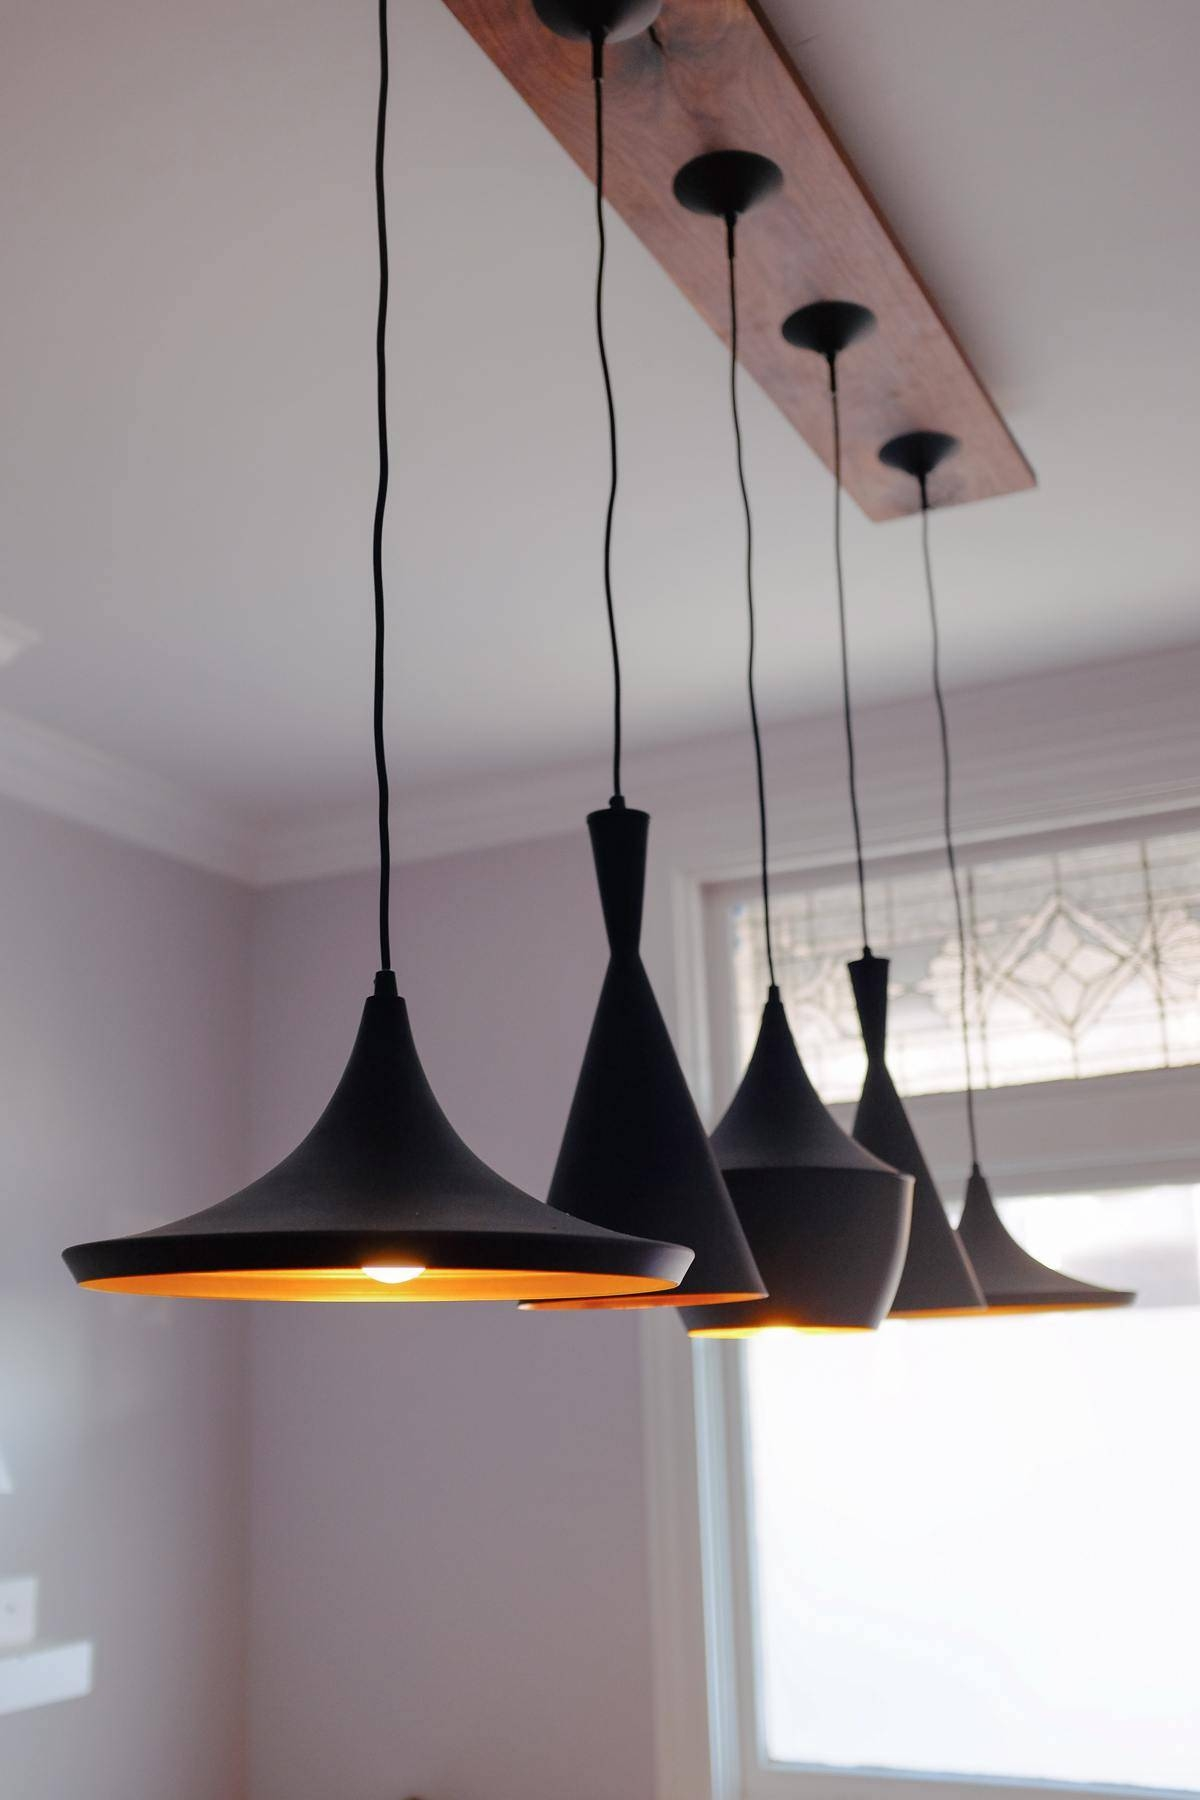 Pendant Lights : Imperative Ceiling Plate For Light Rooftop Regarding Pendant Lights For Ceiling Plate (View 12 of 15)